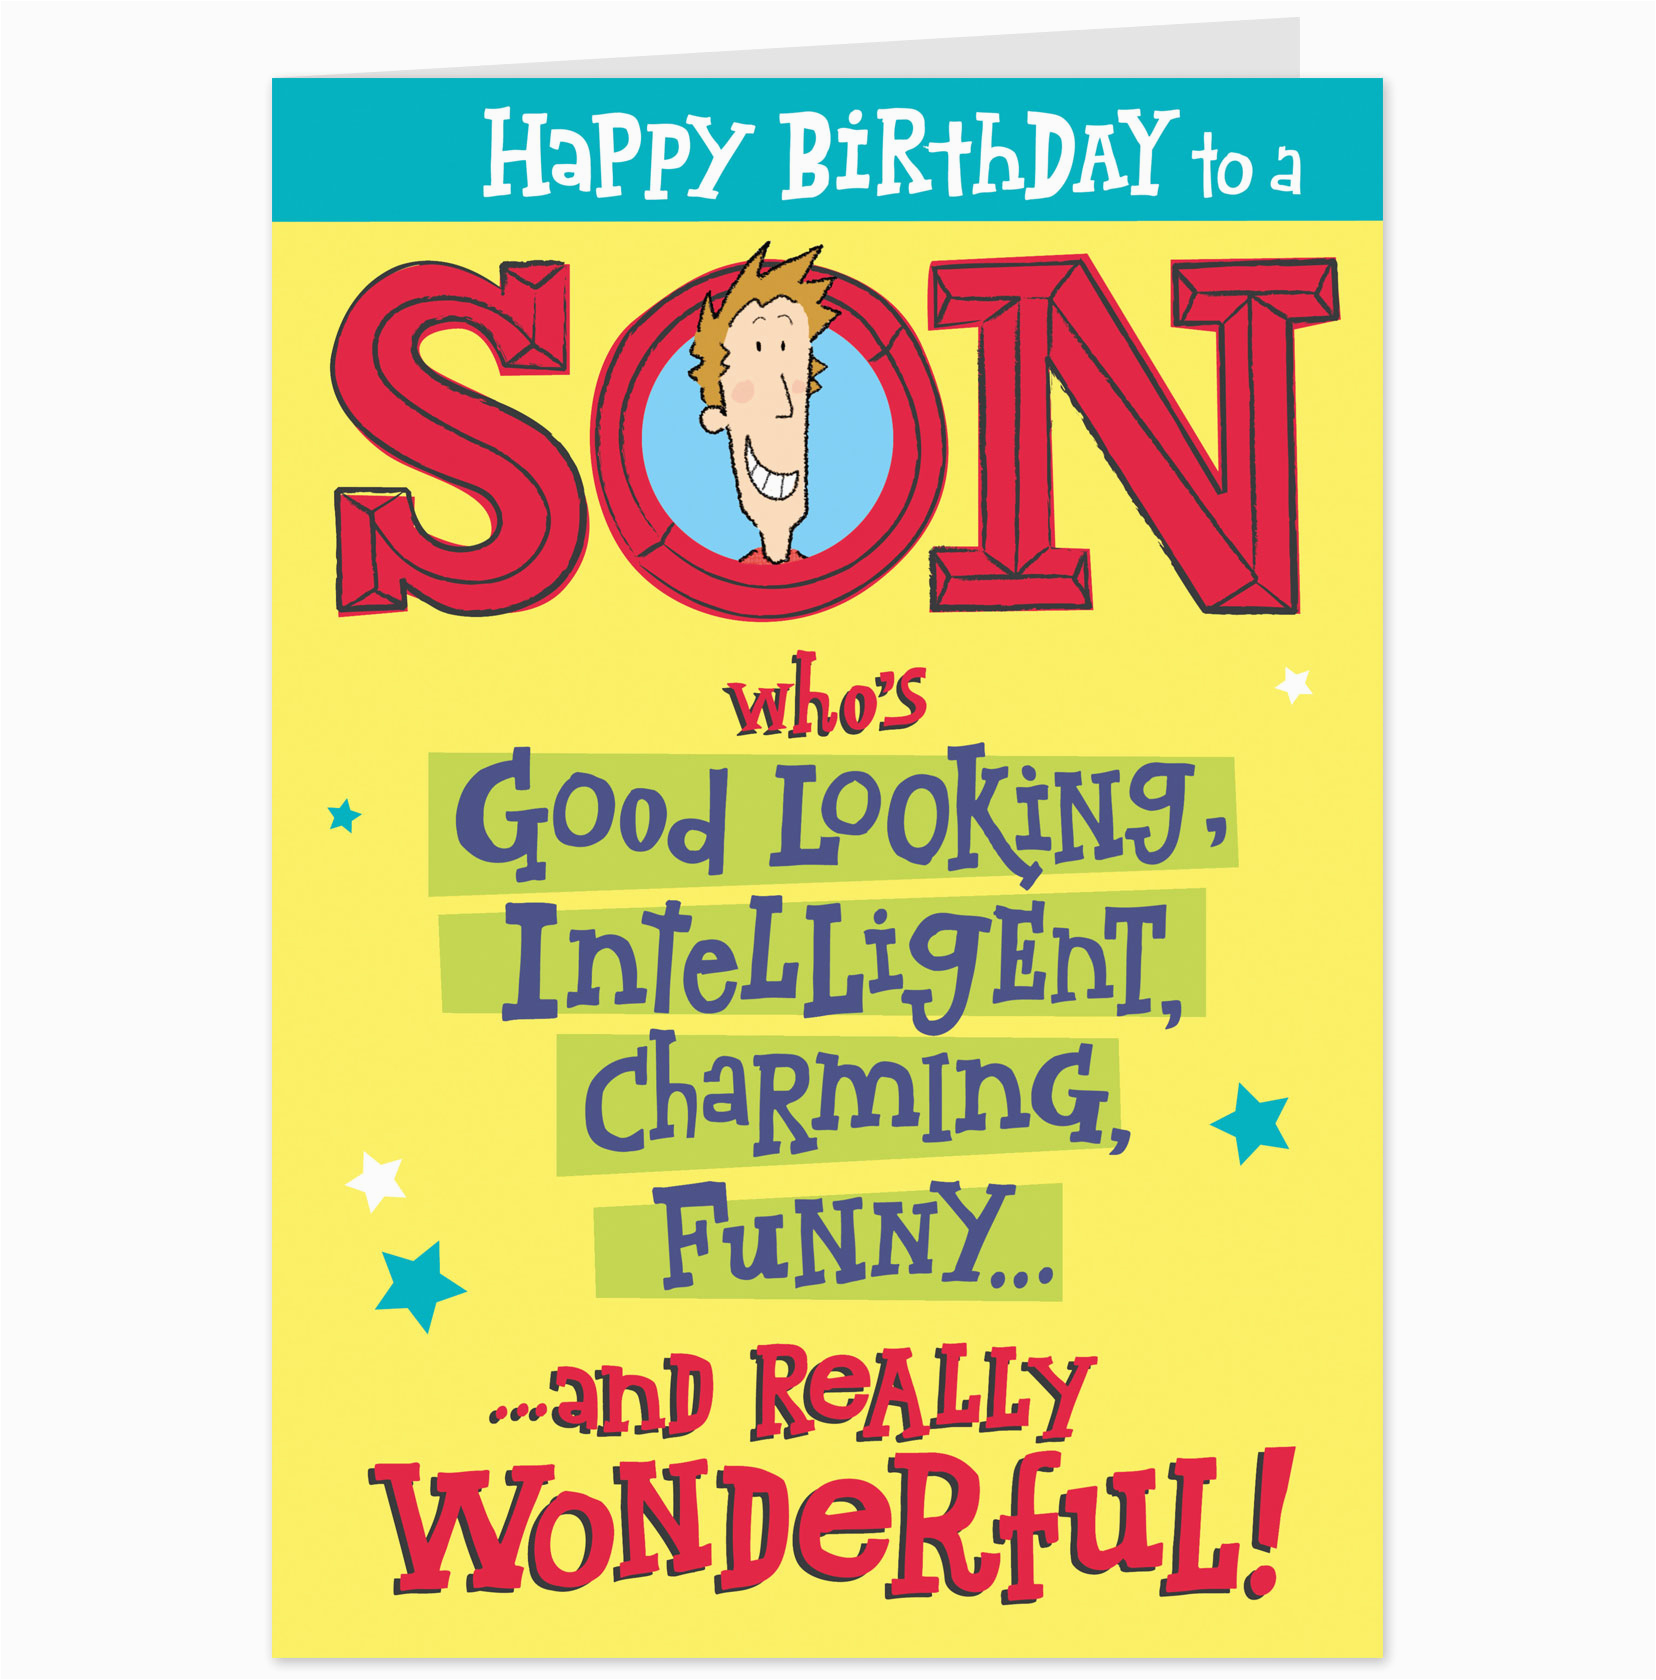 Free Printable Birthday Cards for My son Birthday Wishes for son Photo and Happy Birthday for son